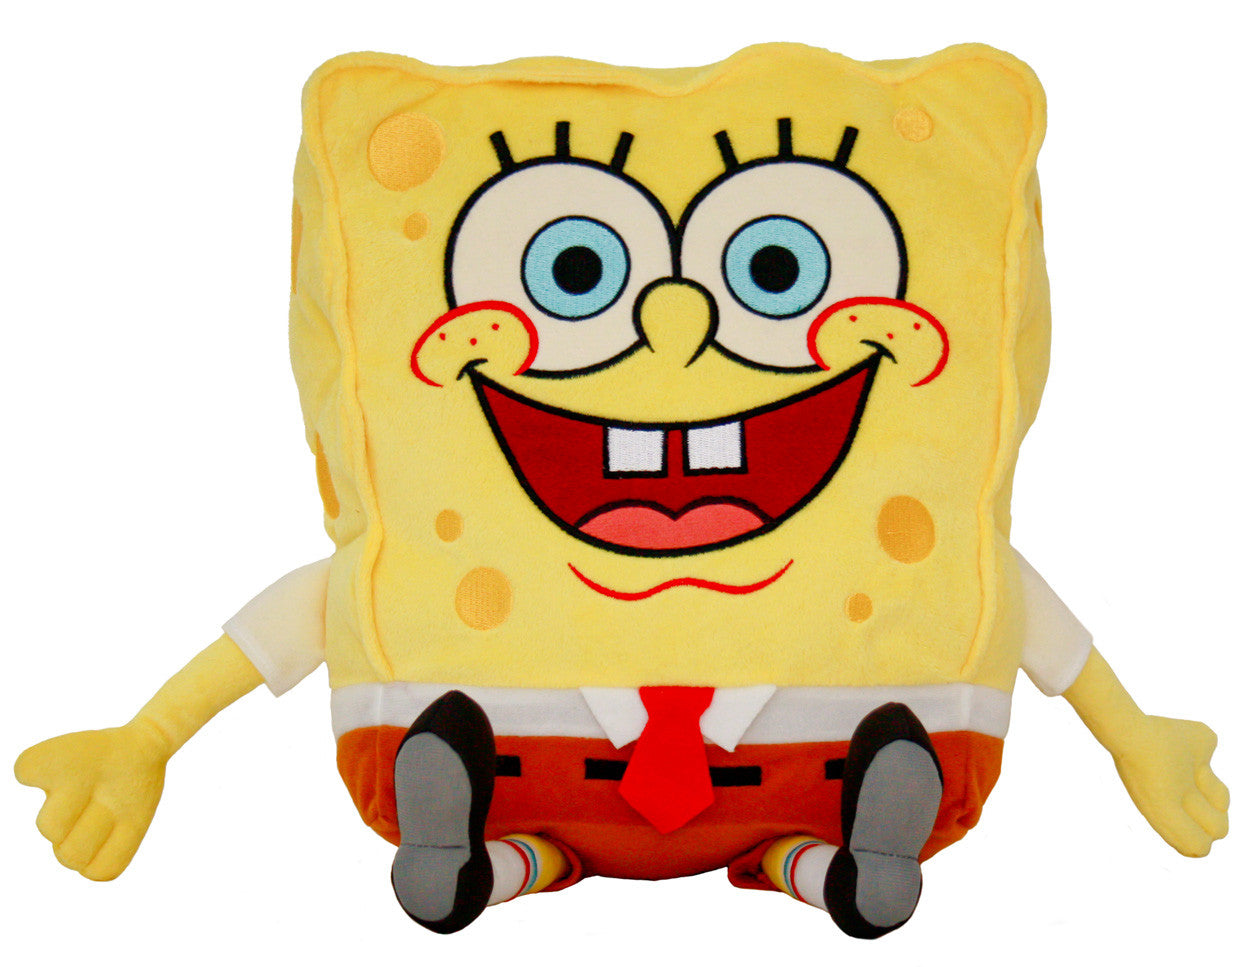 SpongeBob SquarePants 8 inch plush toy